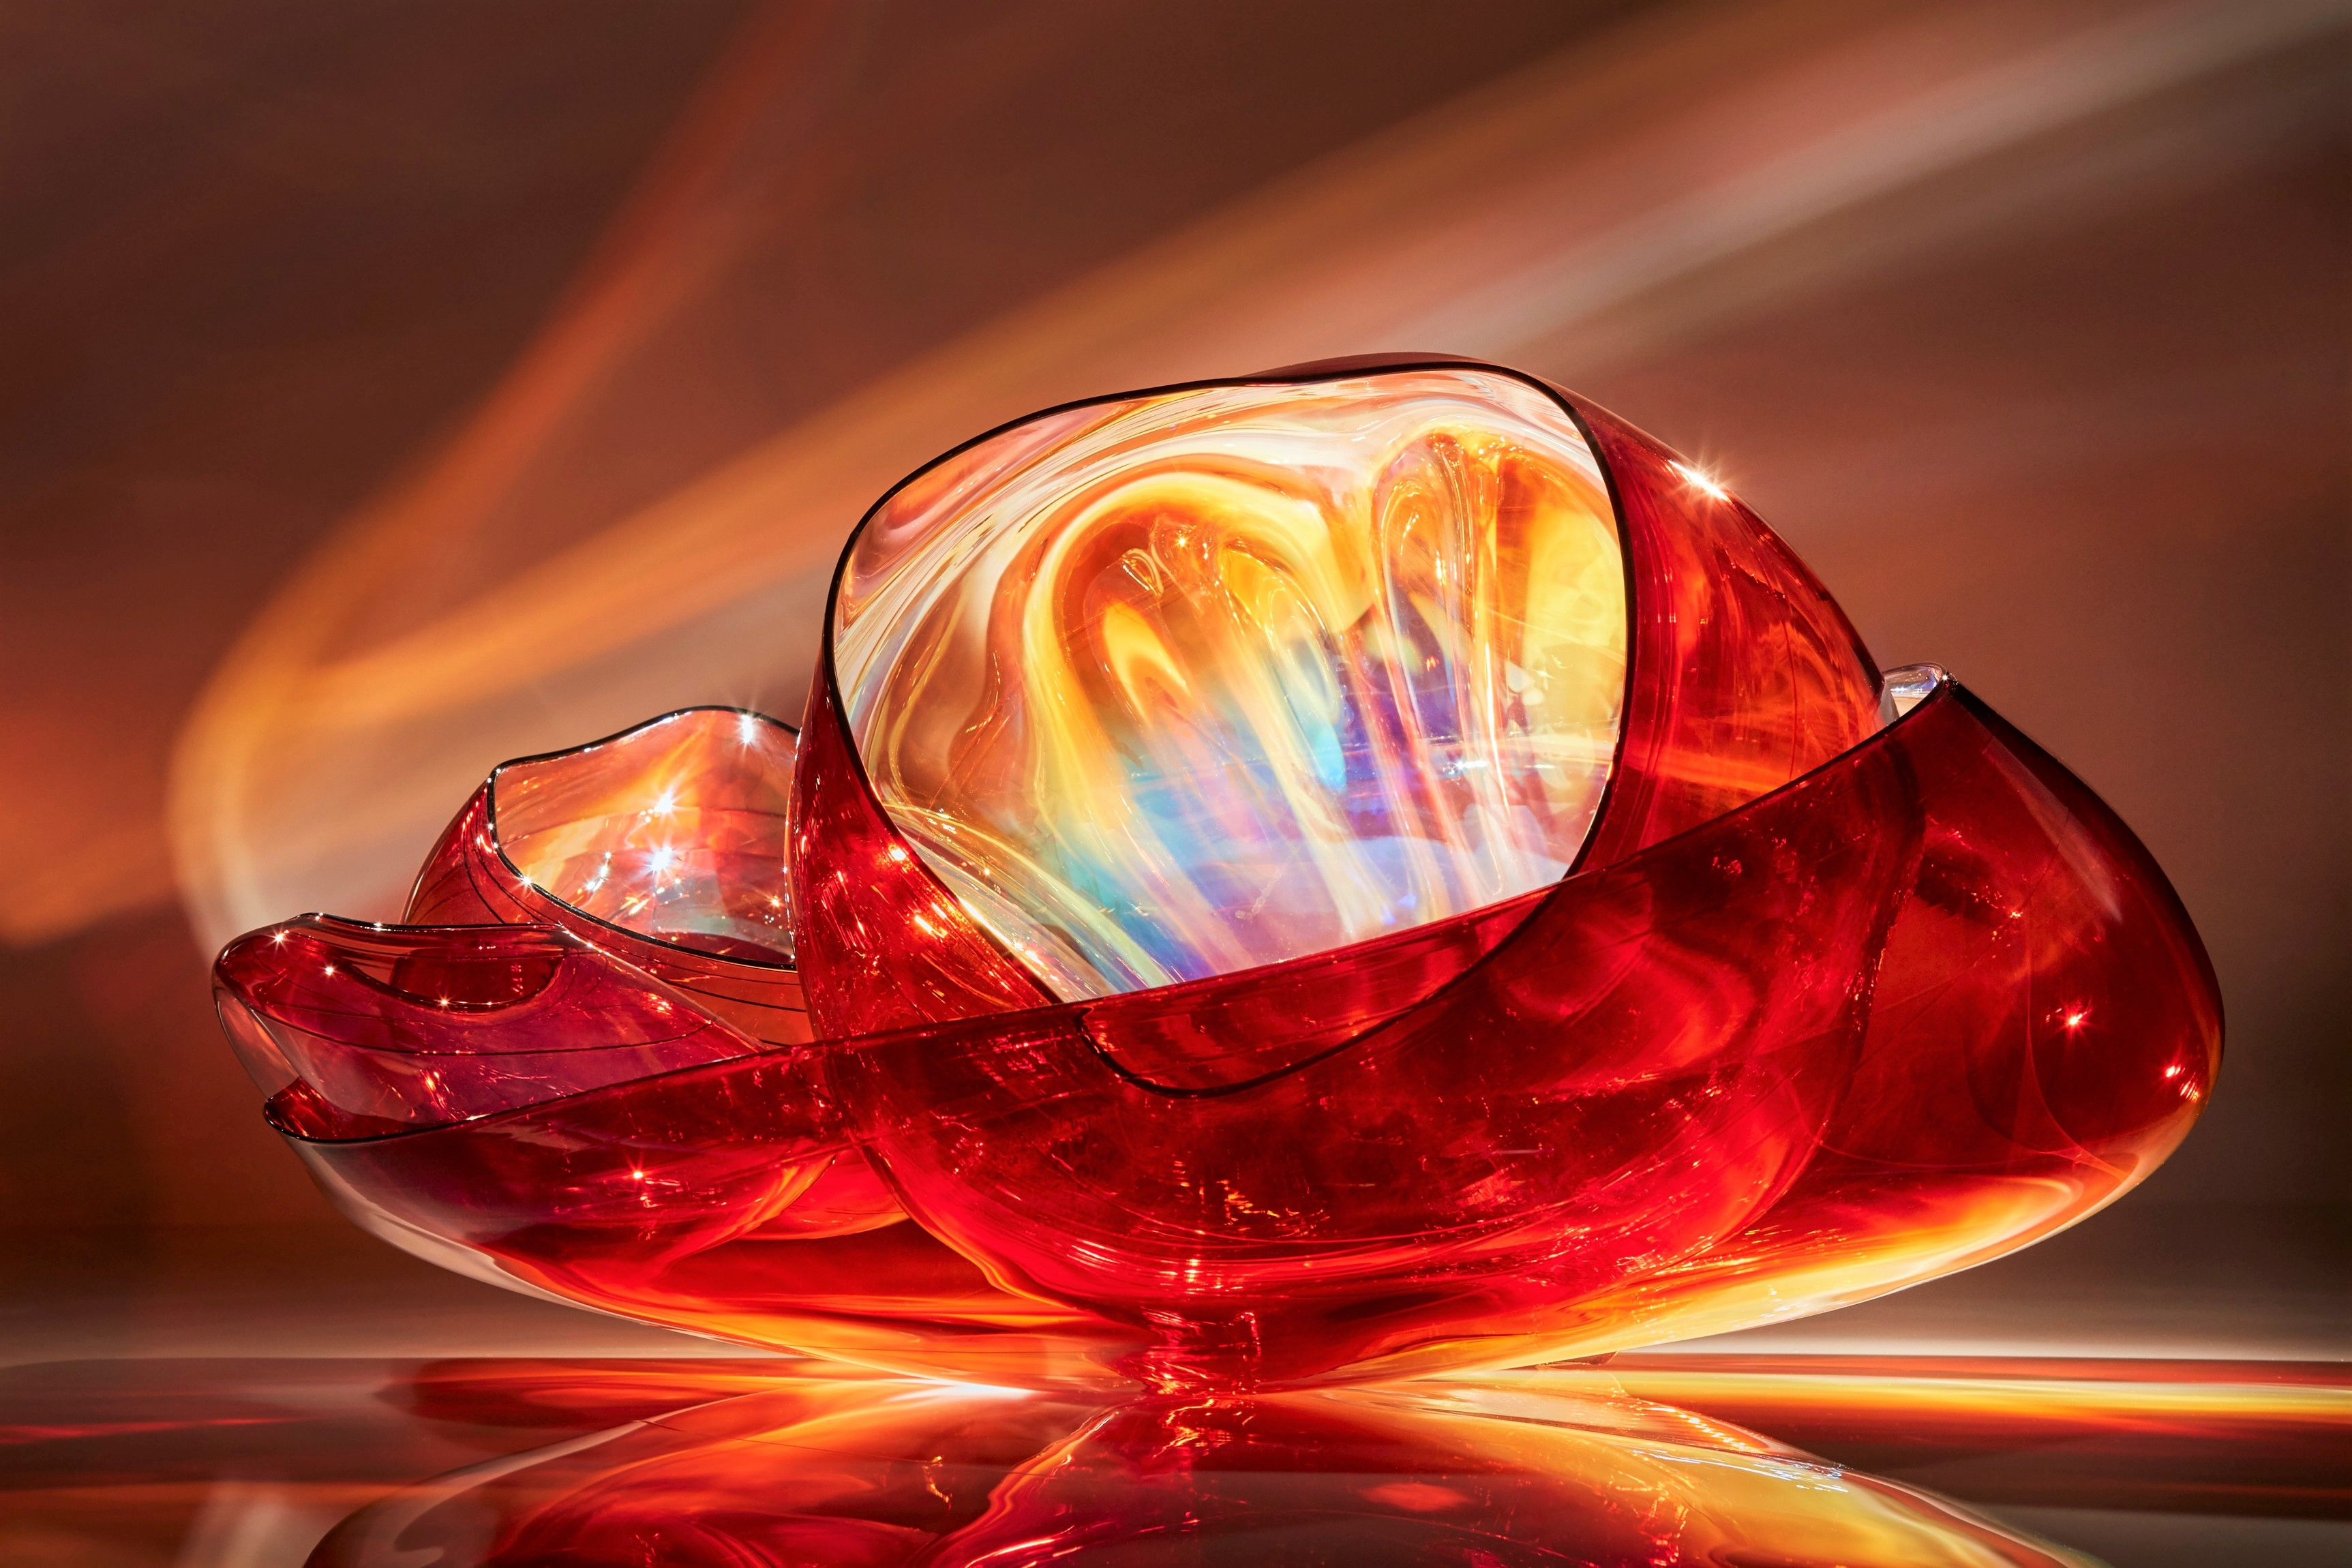 Garnet Flame Basket Set S Color Reacts To Heat In Unpredictable Ways Creating A Prismatic Spectrum Of Rich Reds Pinks Glass Art Projects Glass Art Chihuly